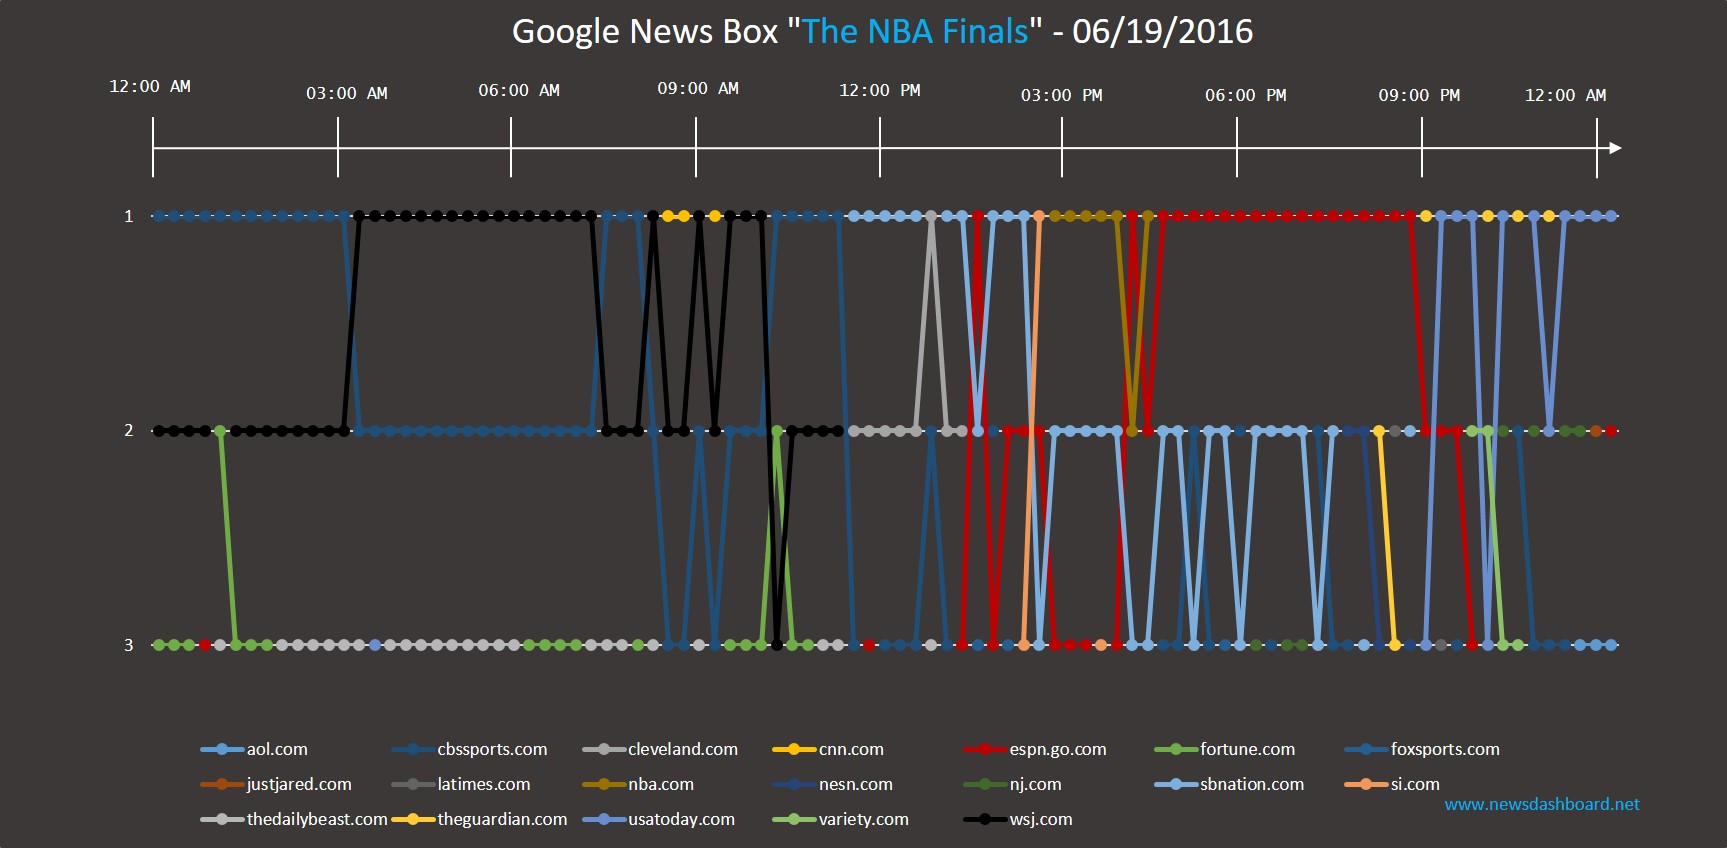 The Cleveland Cavaliers won the NBA finals – espn.go.com won the Google News Boxes | News Dashboard